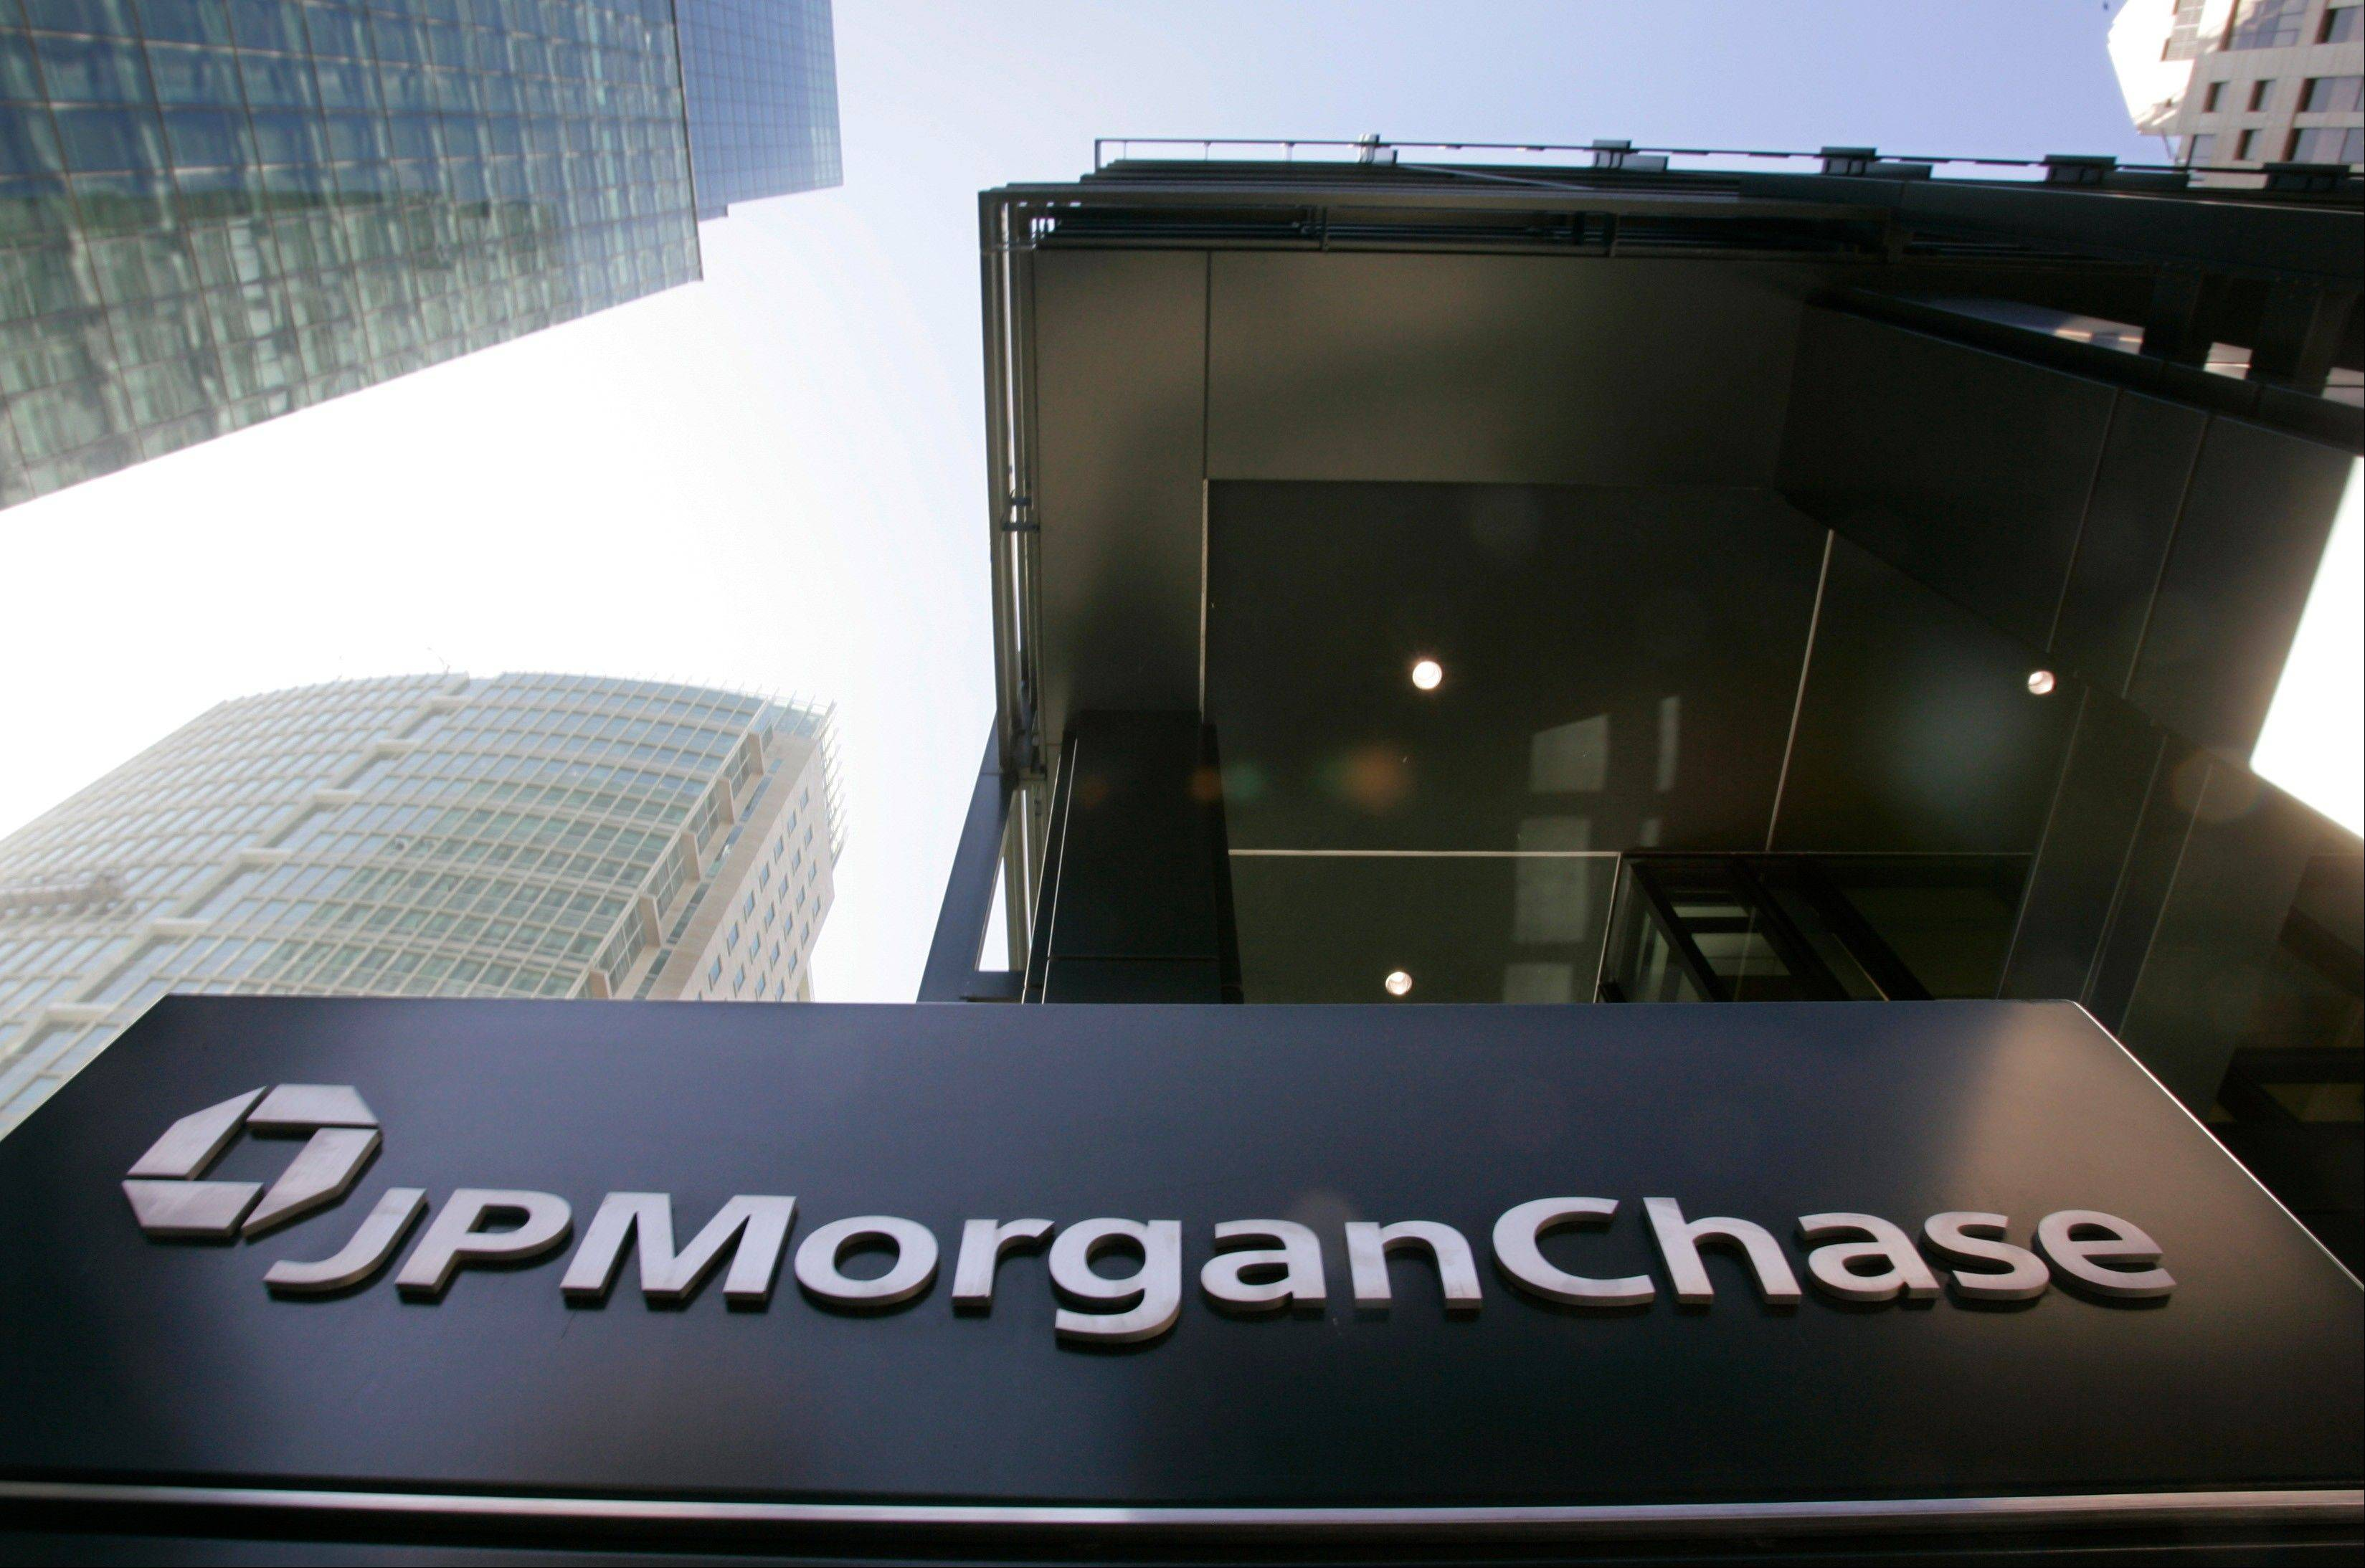 The New York attorney general's office has hit JPMorgan Chase & Co. with a civil lawsuit, alleging that investment bank Bear Stearns � prior to its collapse and subsequent sale to JPMorgan in 2008 � perpetrated massive fraud in deals involving billions in residential mortgage-backed securities.